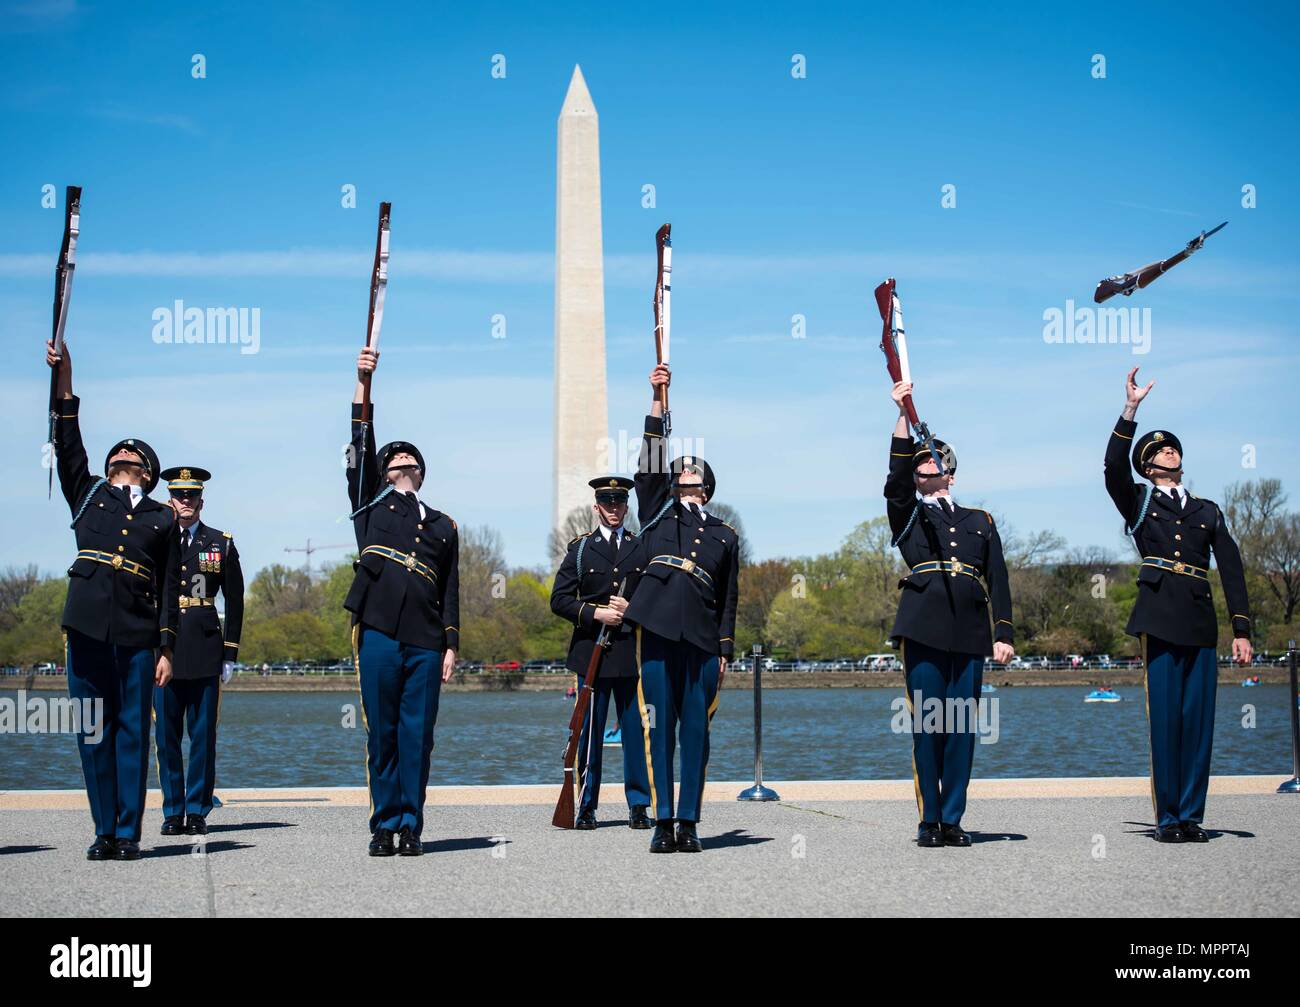 The U.S. Army Drill Team from 3d U.S. Infantry Regiment (The Old Guard), and teams from the other four major military services, came together to perform during the 2017 Joint Service Drill Exhibition at the Jefferson Memorial, Washington, D.C., April 8, 2017. This exhibition is one of only a few opportunities to see the service drill teams in the same place at the same time. (U.S. Army photos by Staff Sgt. Terrance D. Rhodes) - Stock Image